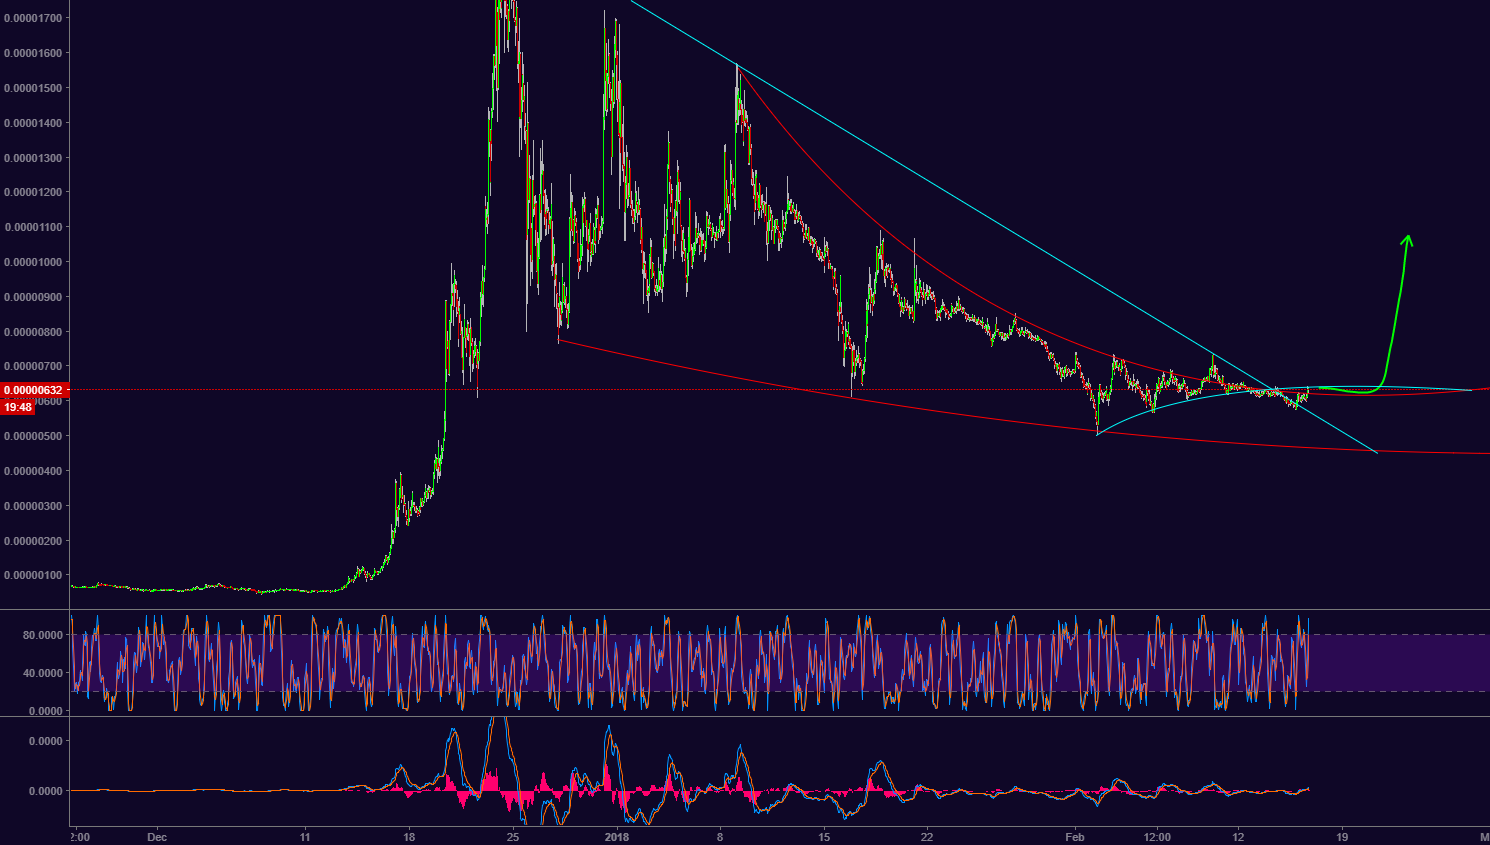 XVG LONG, it is finaly making a move